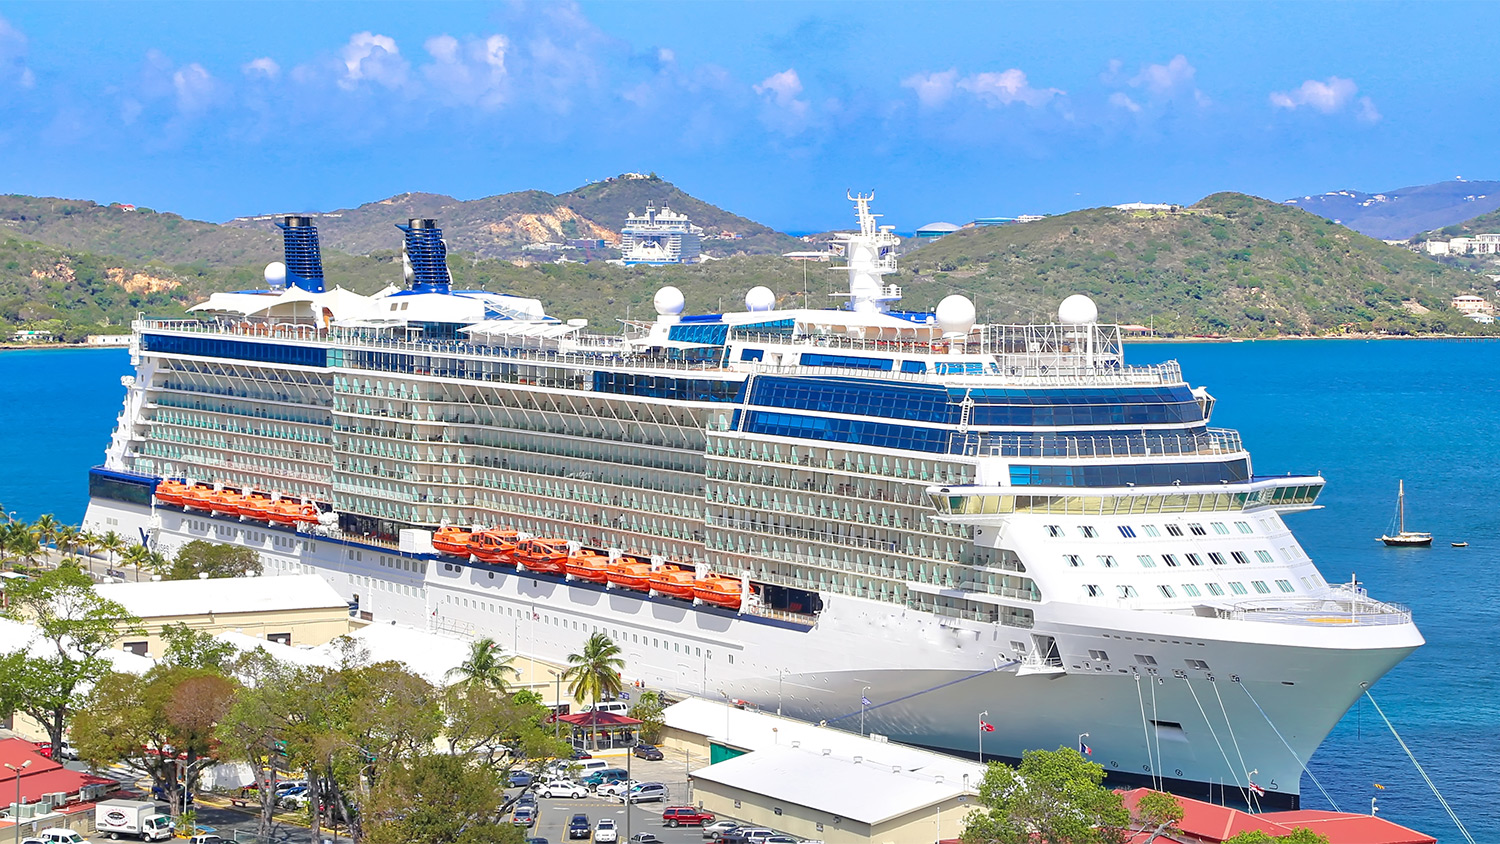 A giant cruise ship docked in port at St. Thomas, US Virgin Islands